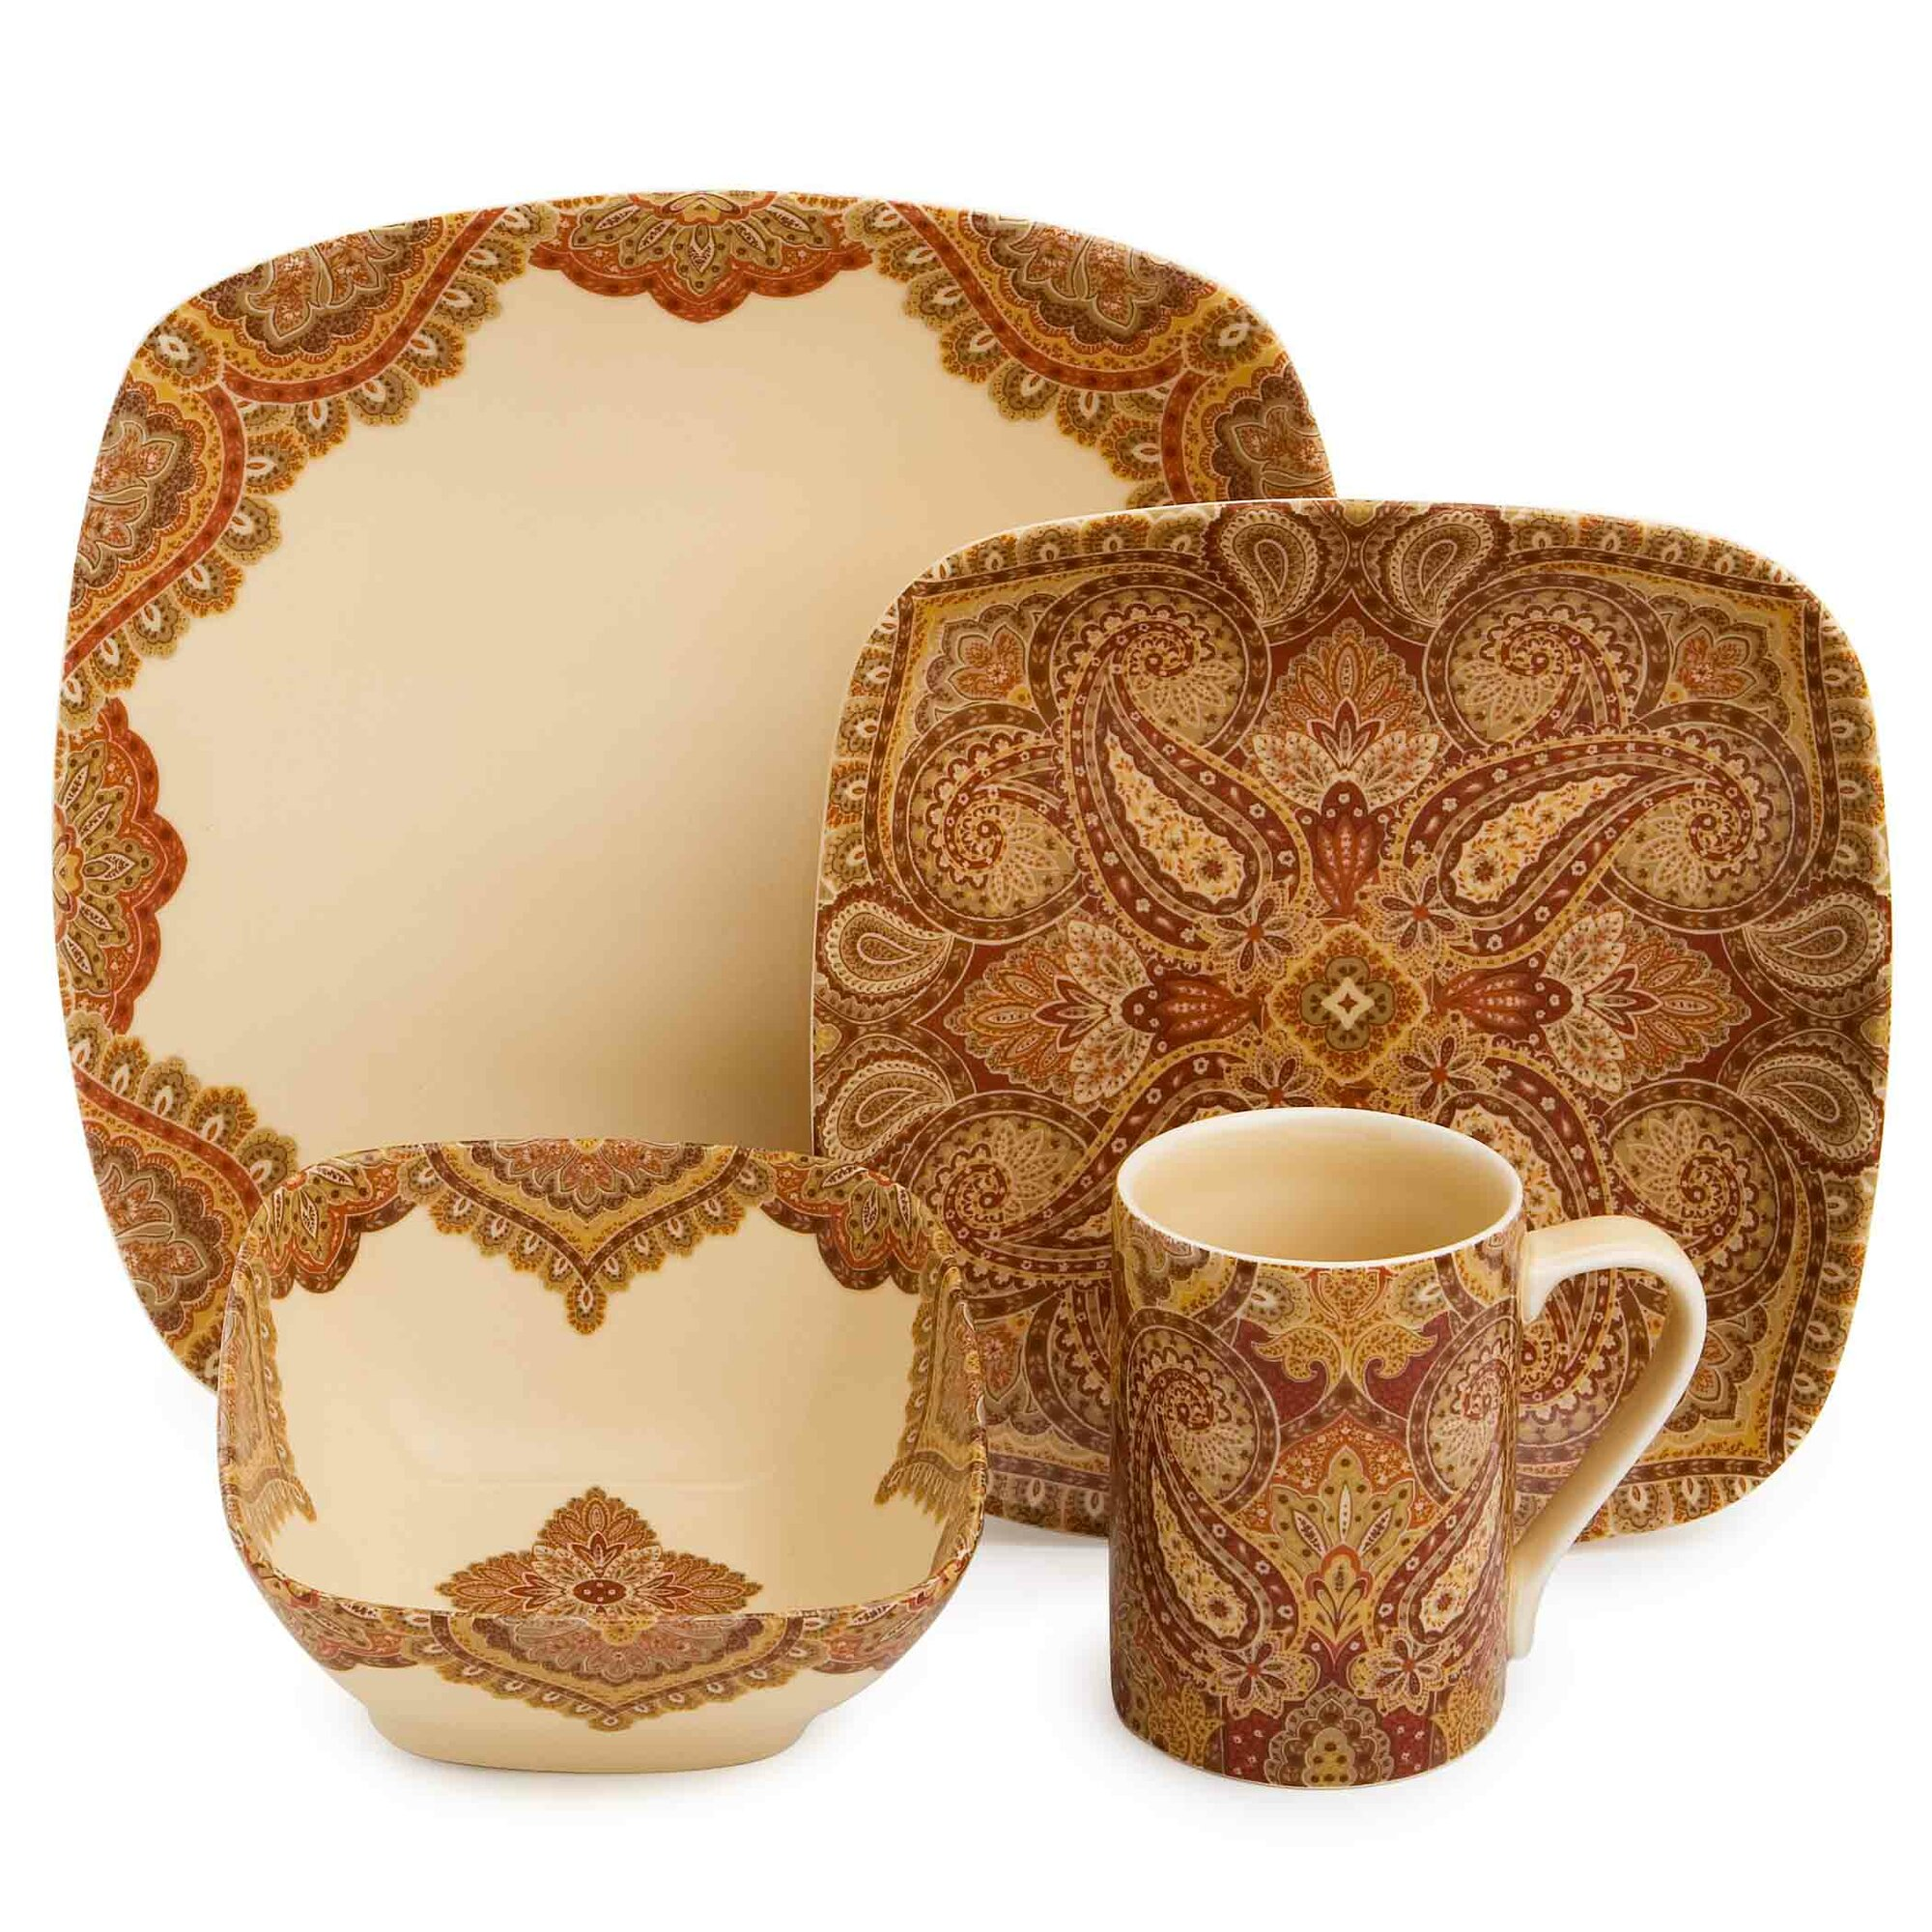 222 fifth spice road 16 piece dinnerware set ebay